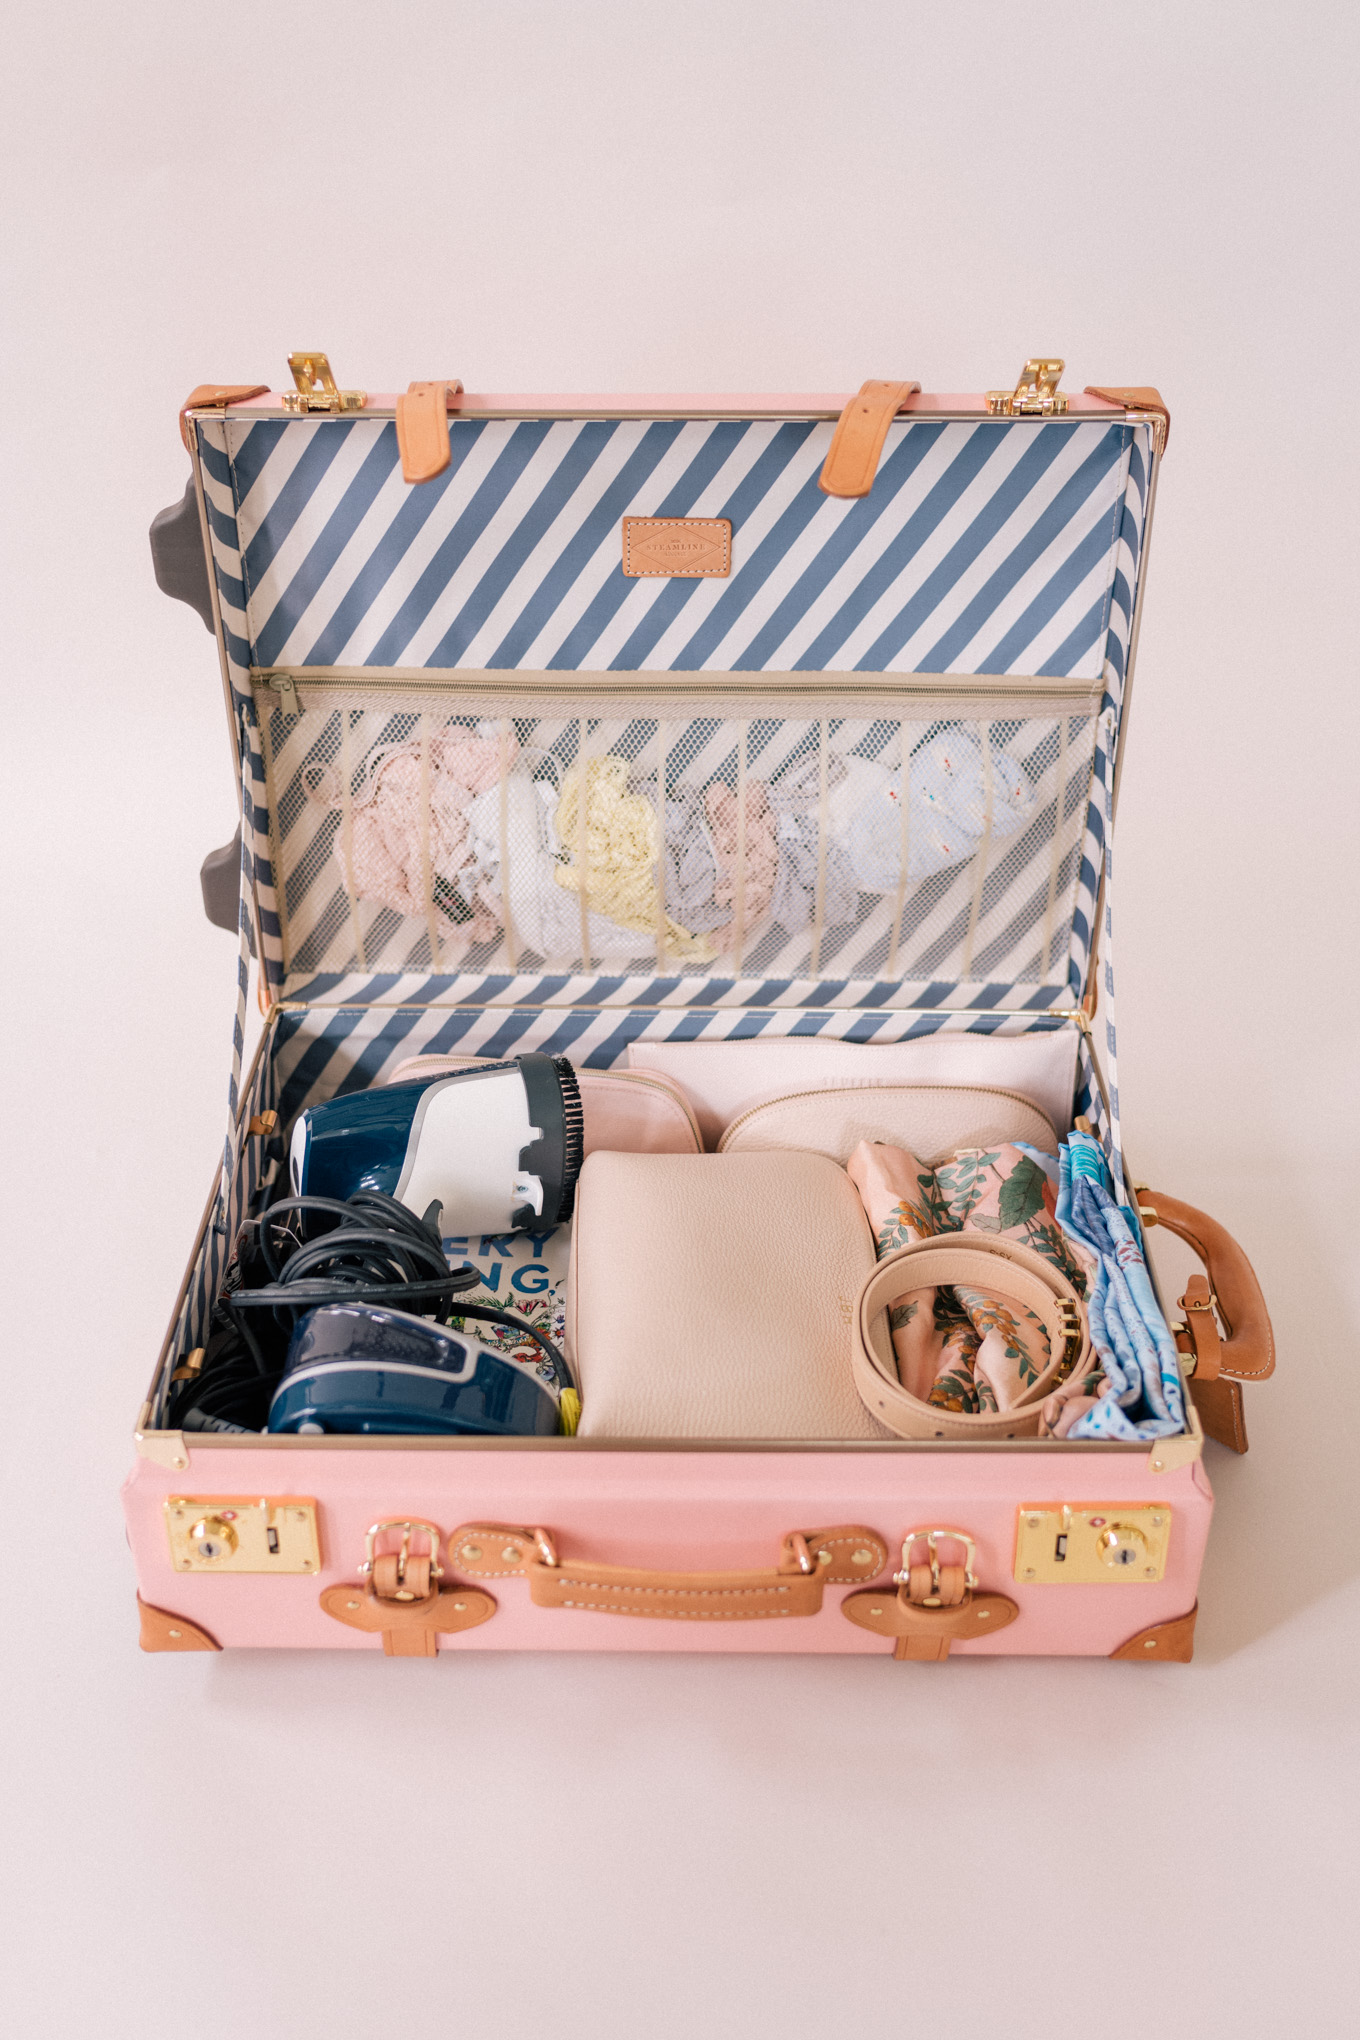 gmg-how-i-pack-my-suitcases-1003958